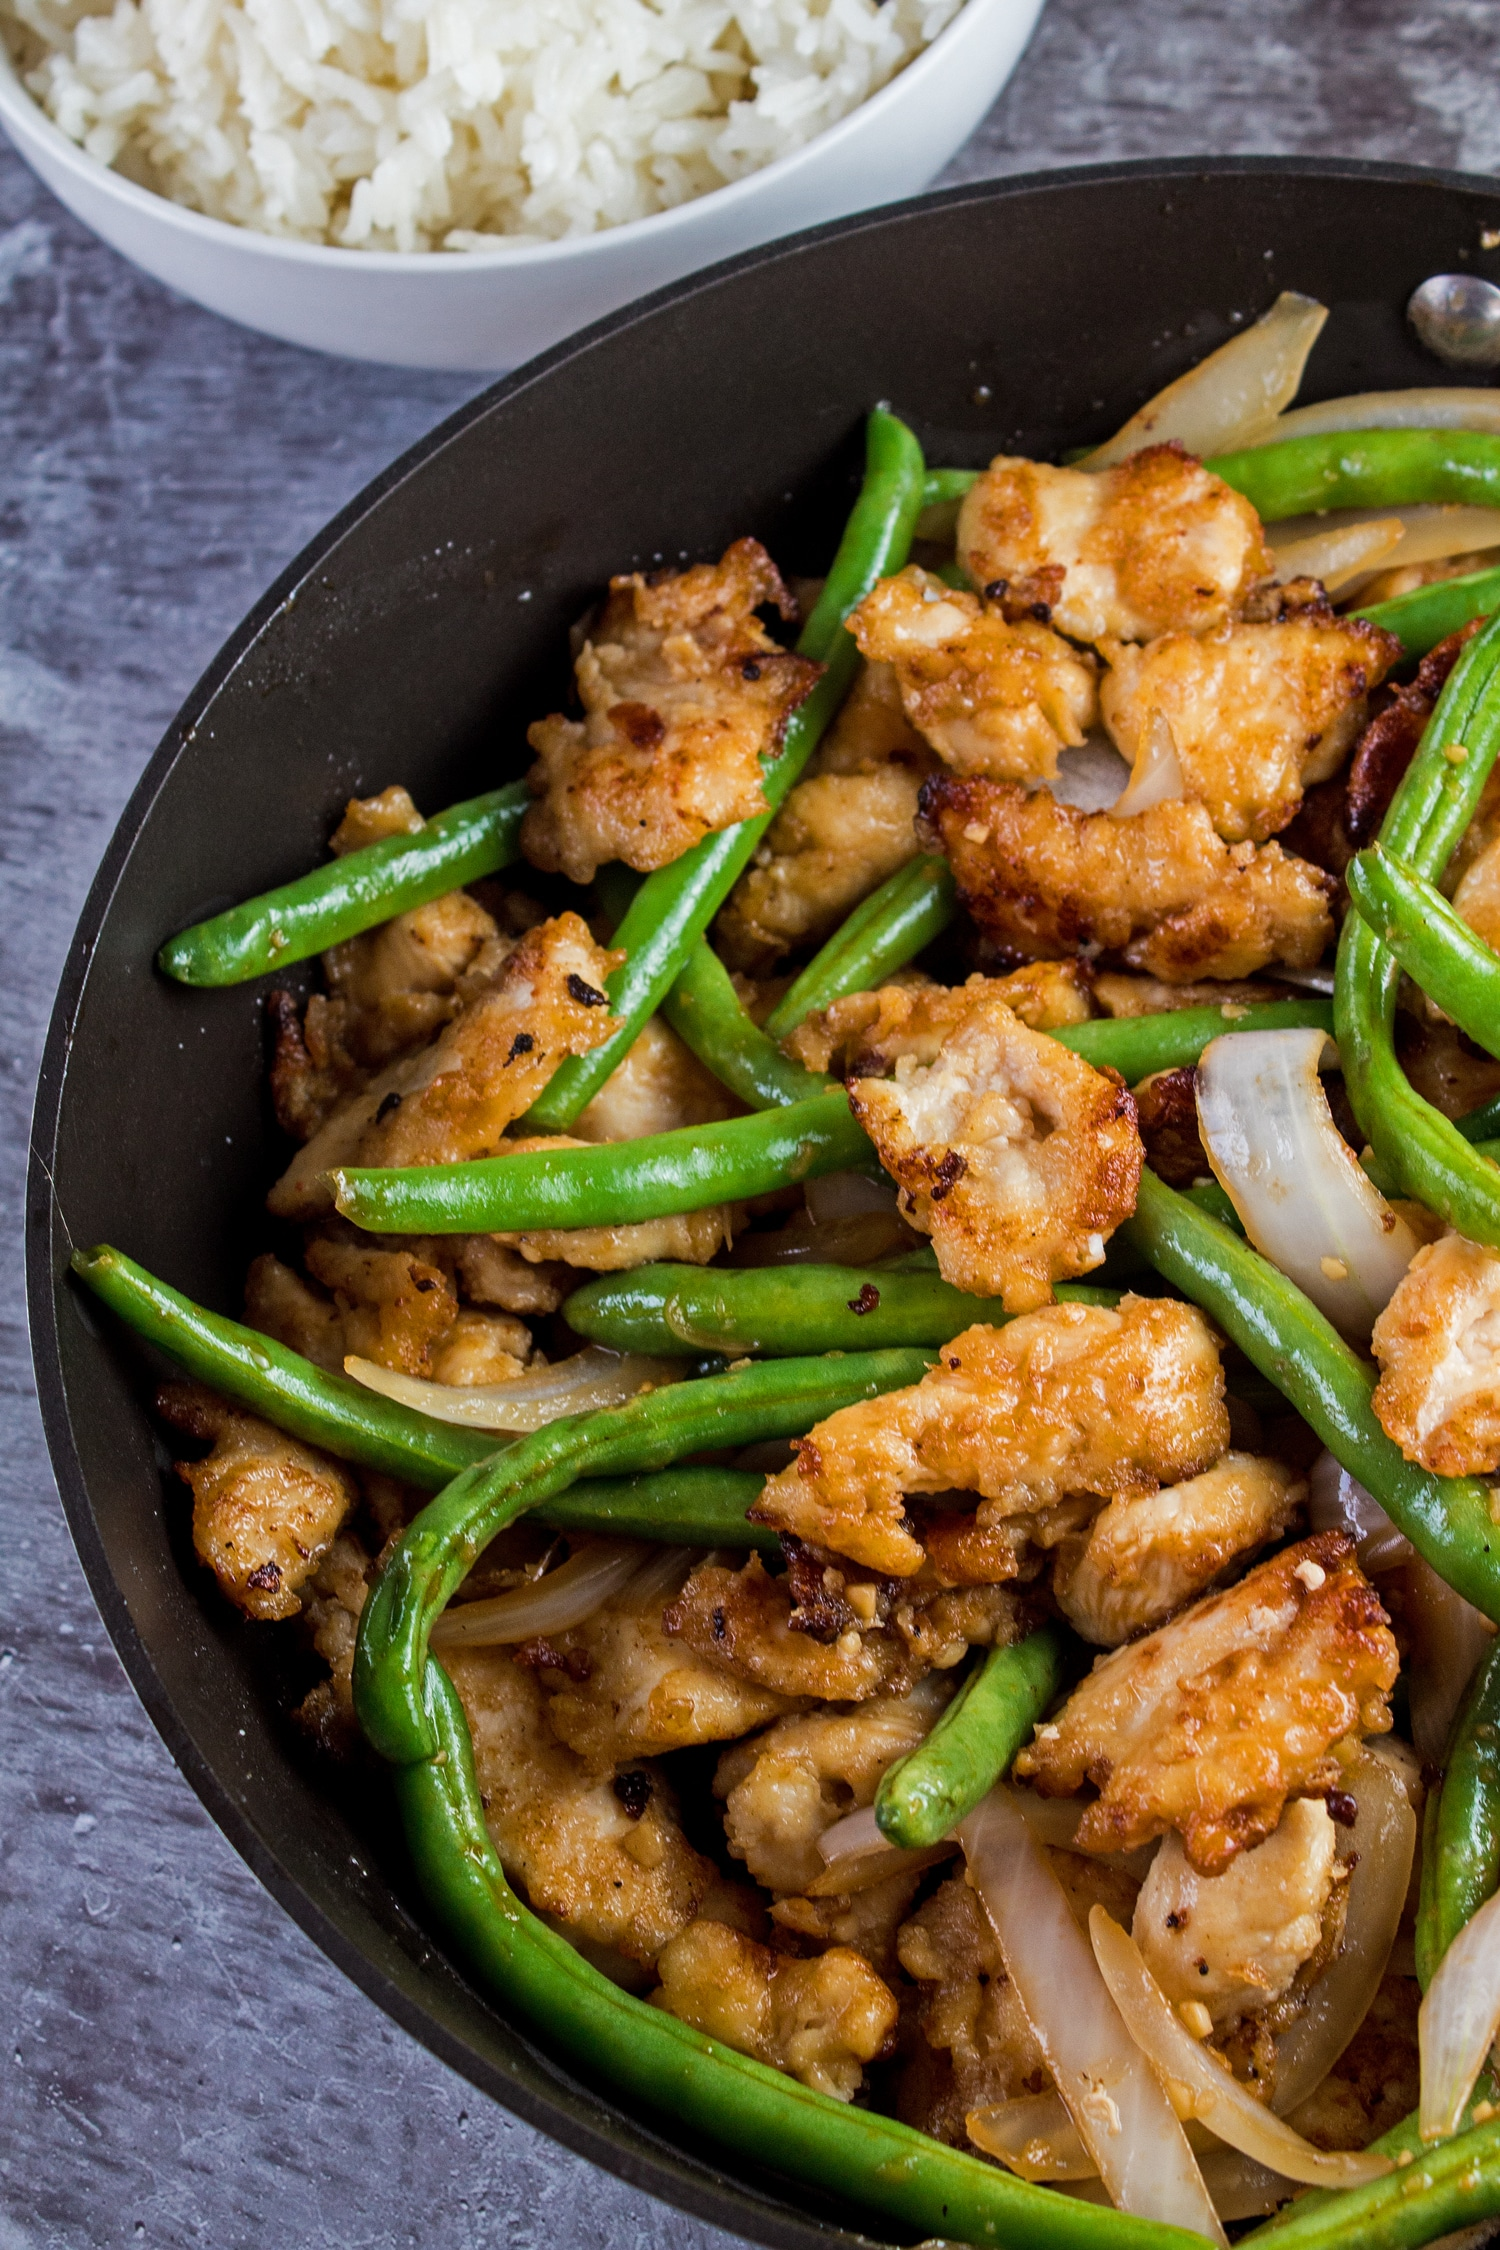 Tall vertical overhead image of the panda express string bean chicken with green beans, chunks of white onion and chicken breast pieces in a frying pan on grey background.